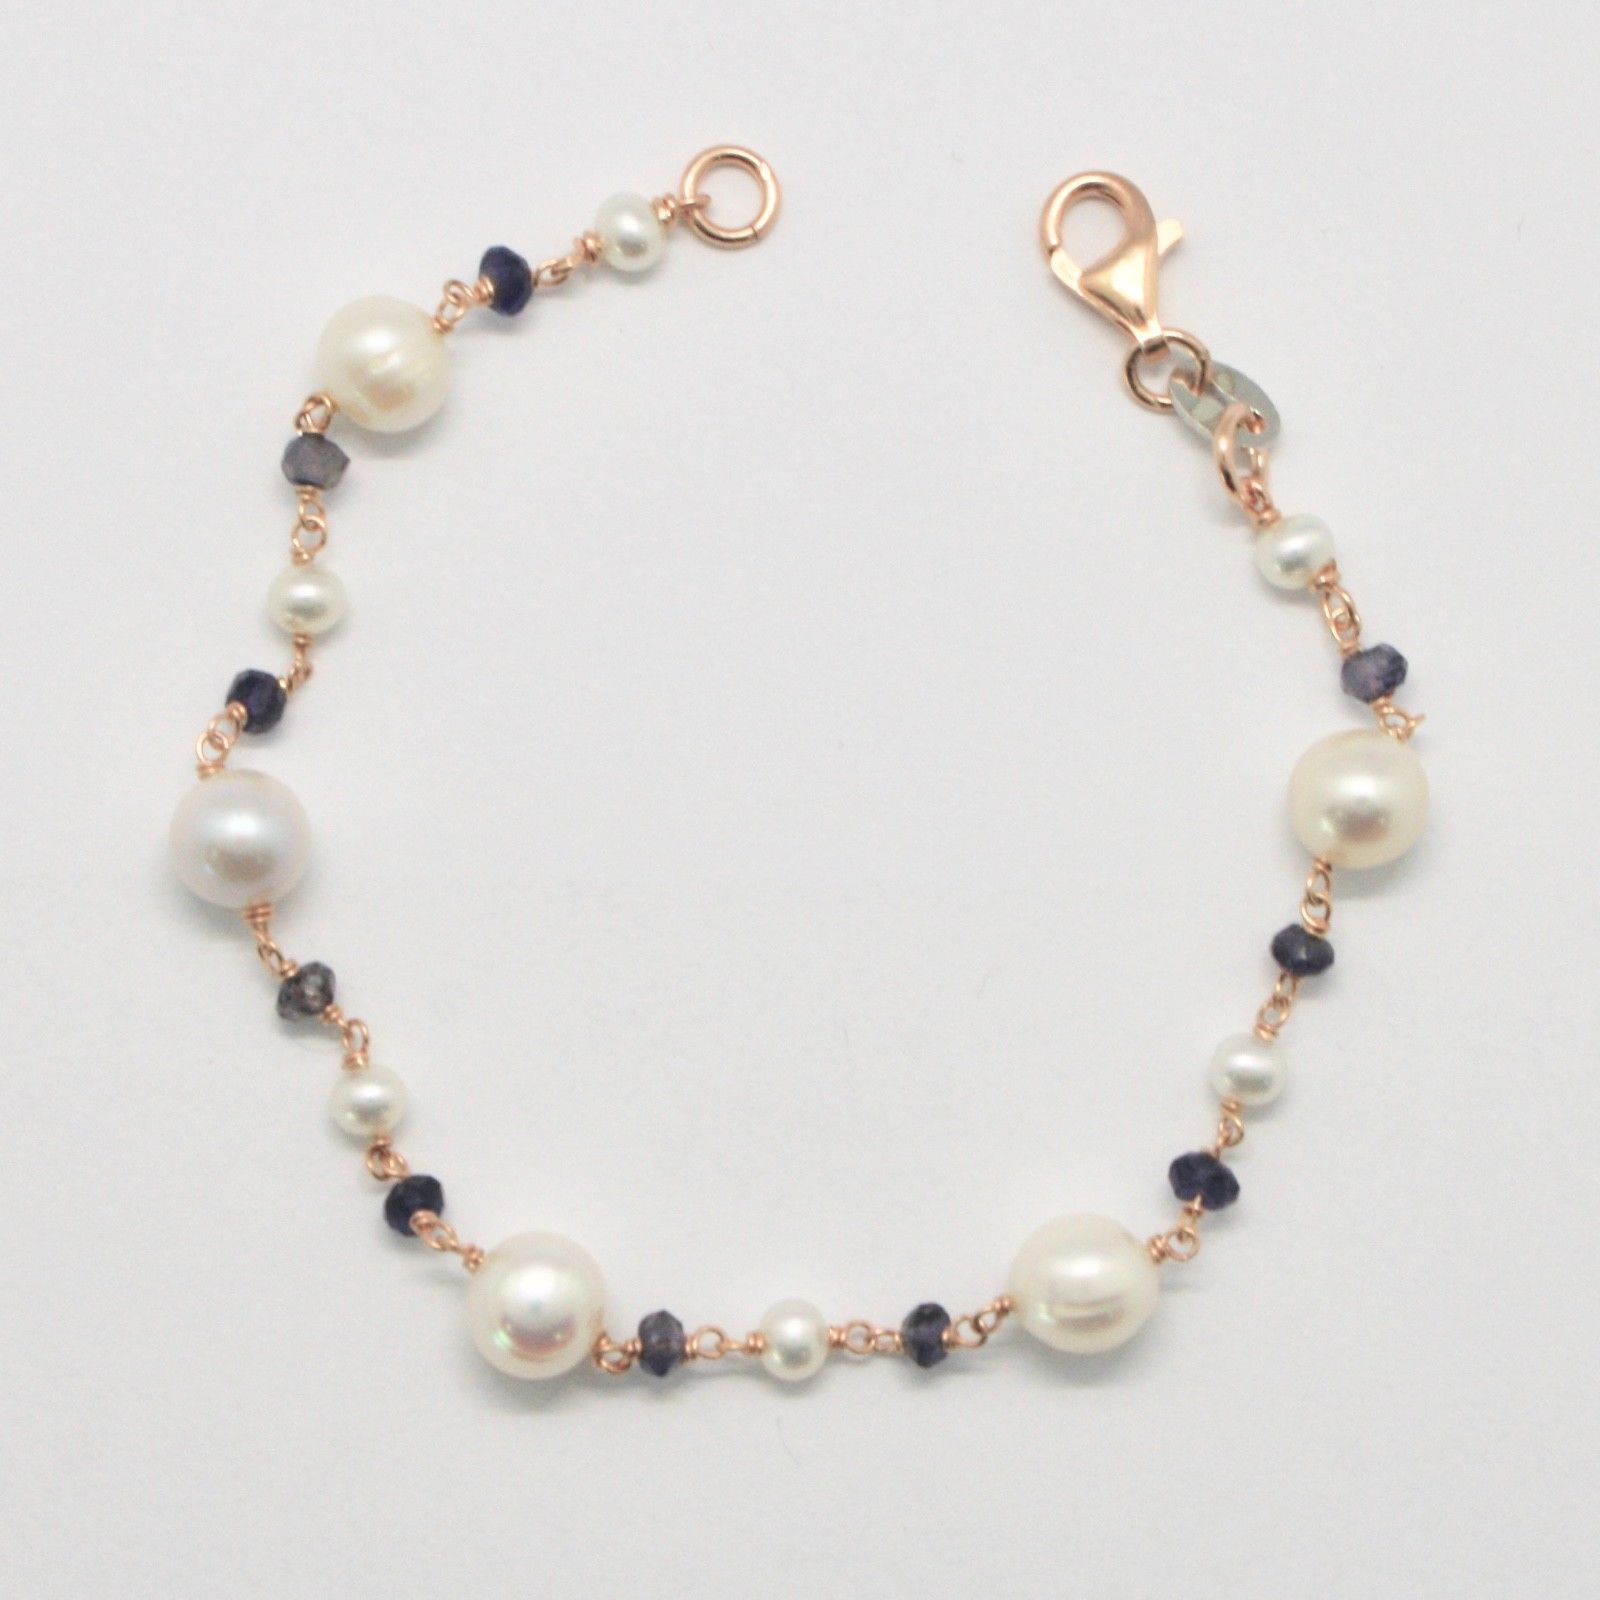 Silver 925 Bracelet with Pearls White Cultured Freshwater Potato & Iolite Made